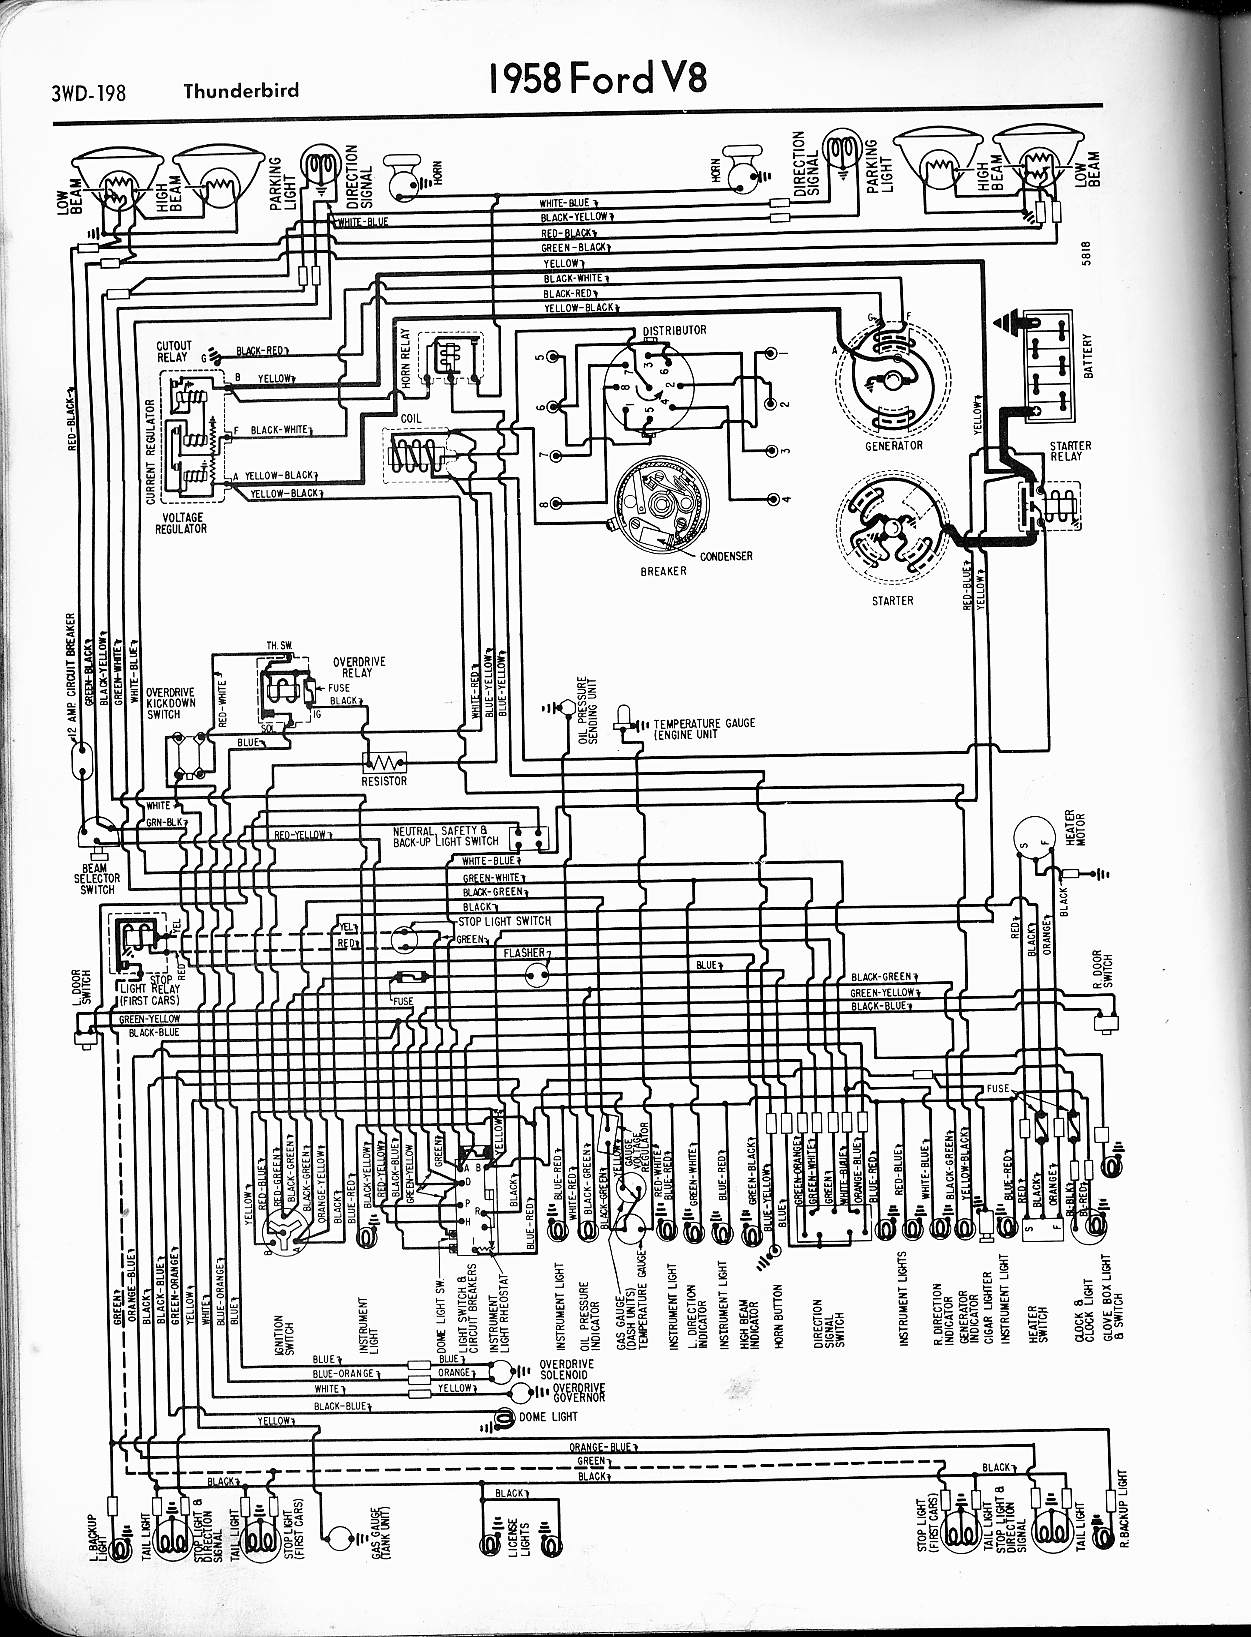 MWire5765 198 57 65 ford wiring diagrams 1965 Thunderbird Window Regulator at virtualis.co